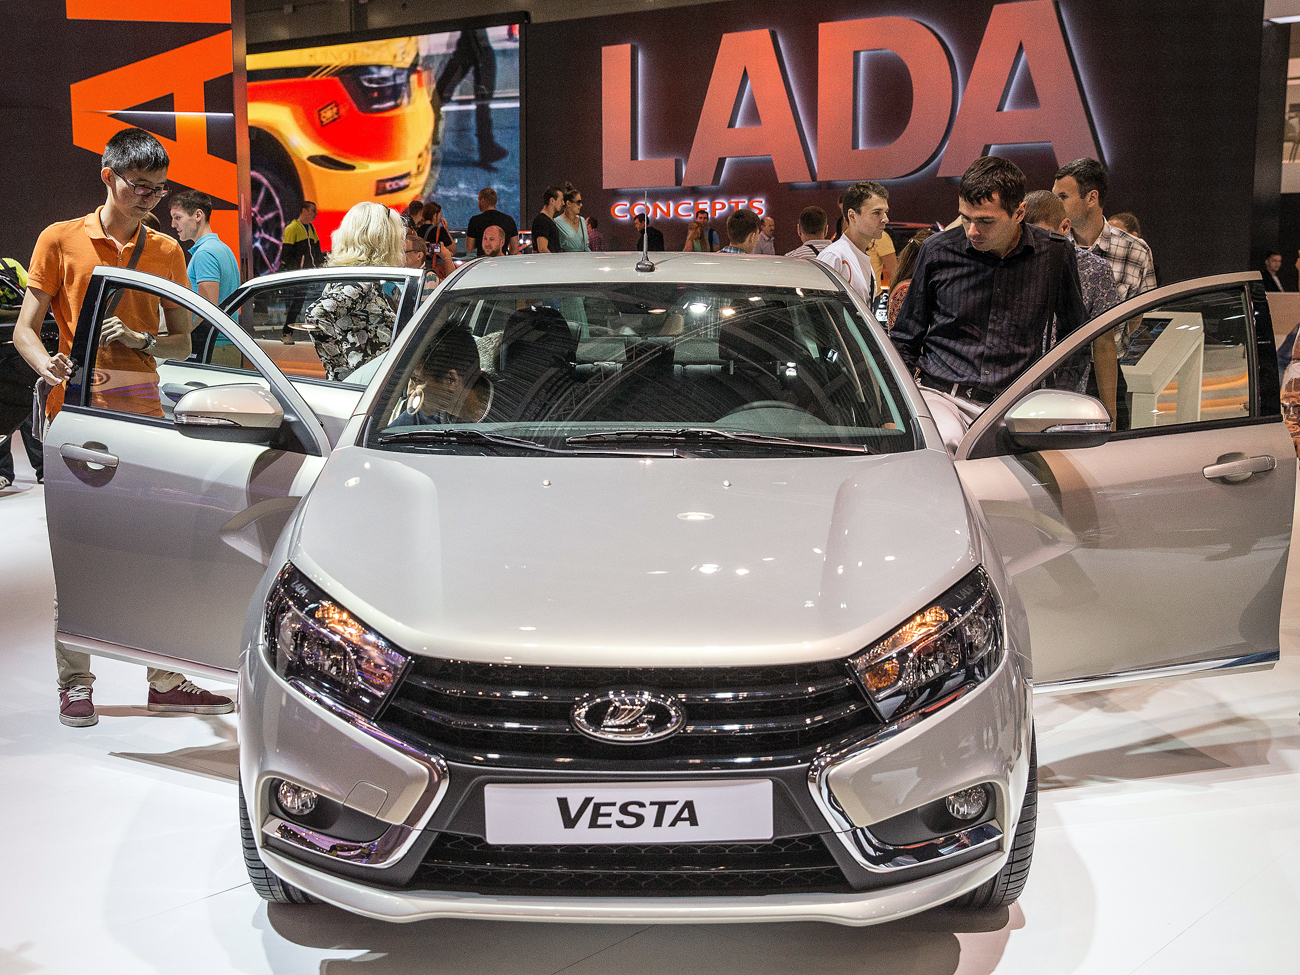 2,300 Lada cars were sold in Germany in 2016.